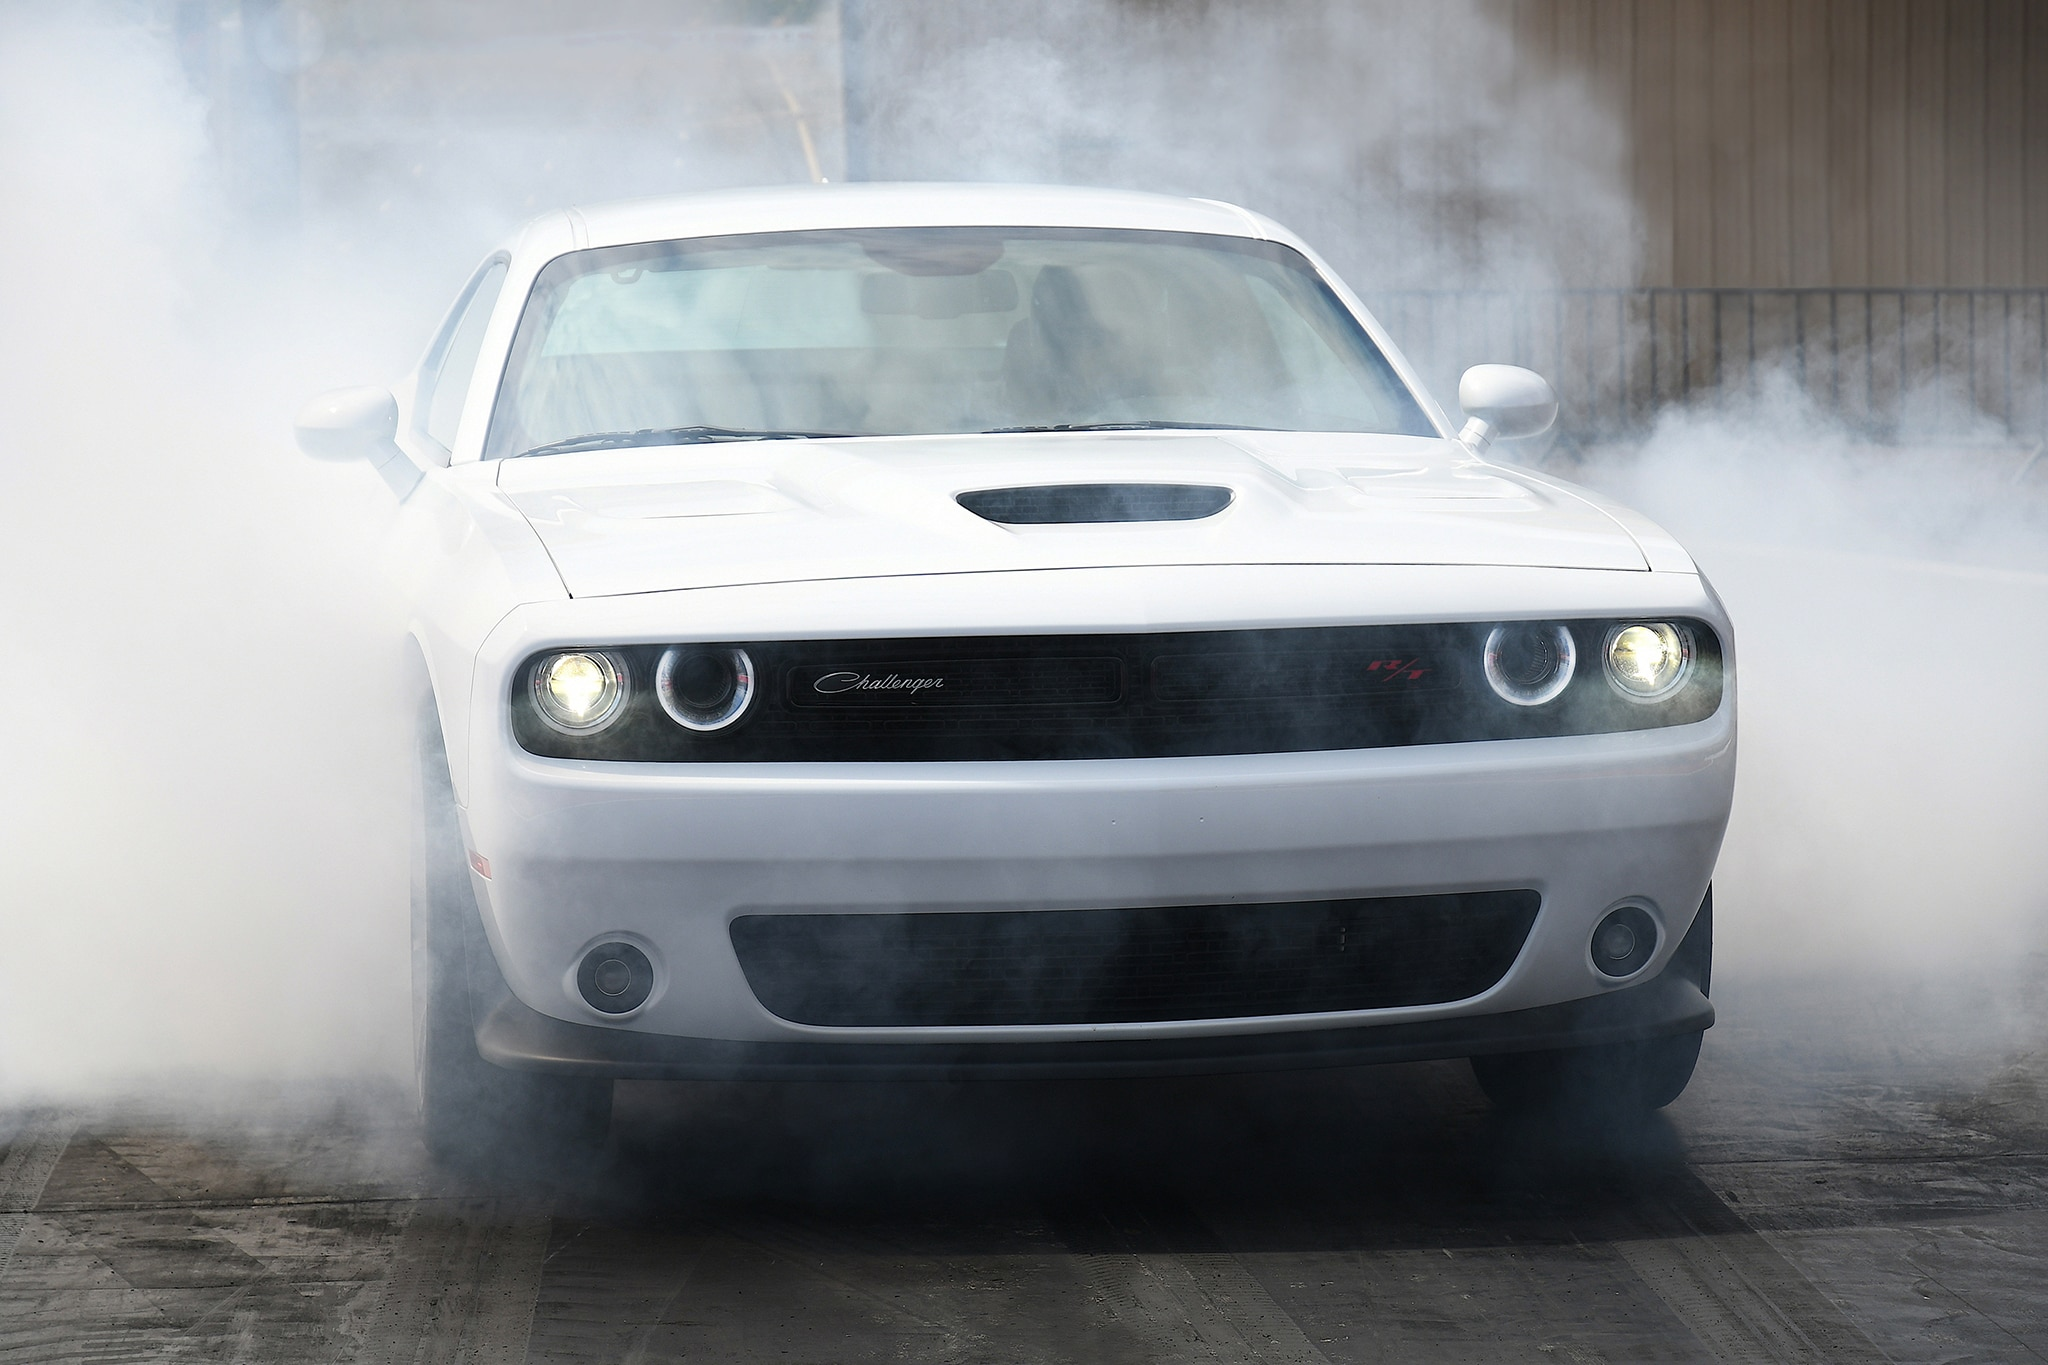 Dodge Has Built A 485bhp 'Entry-Grade' Street-Legal Drag Racer